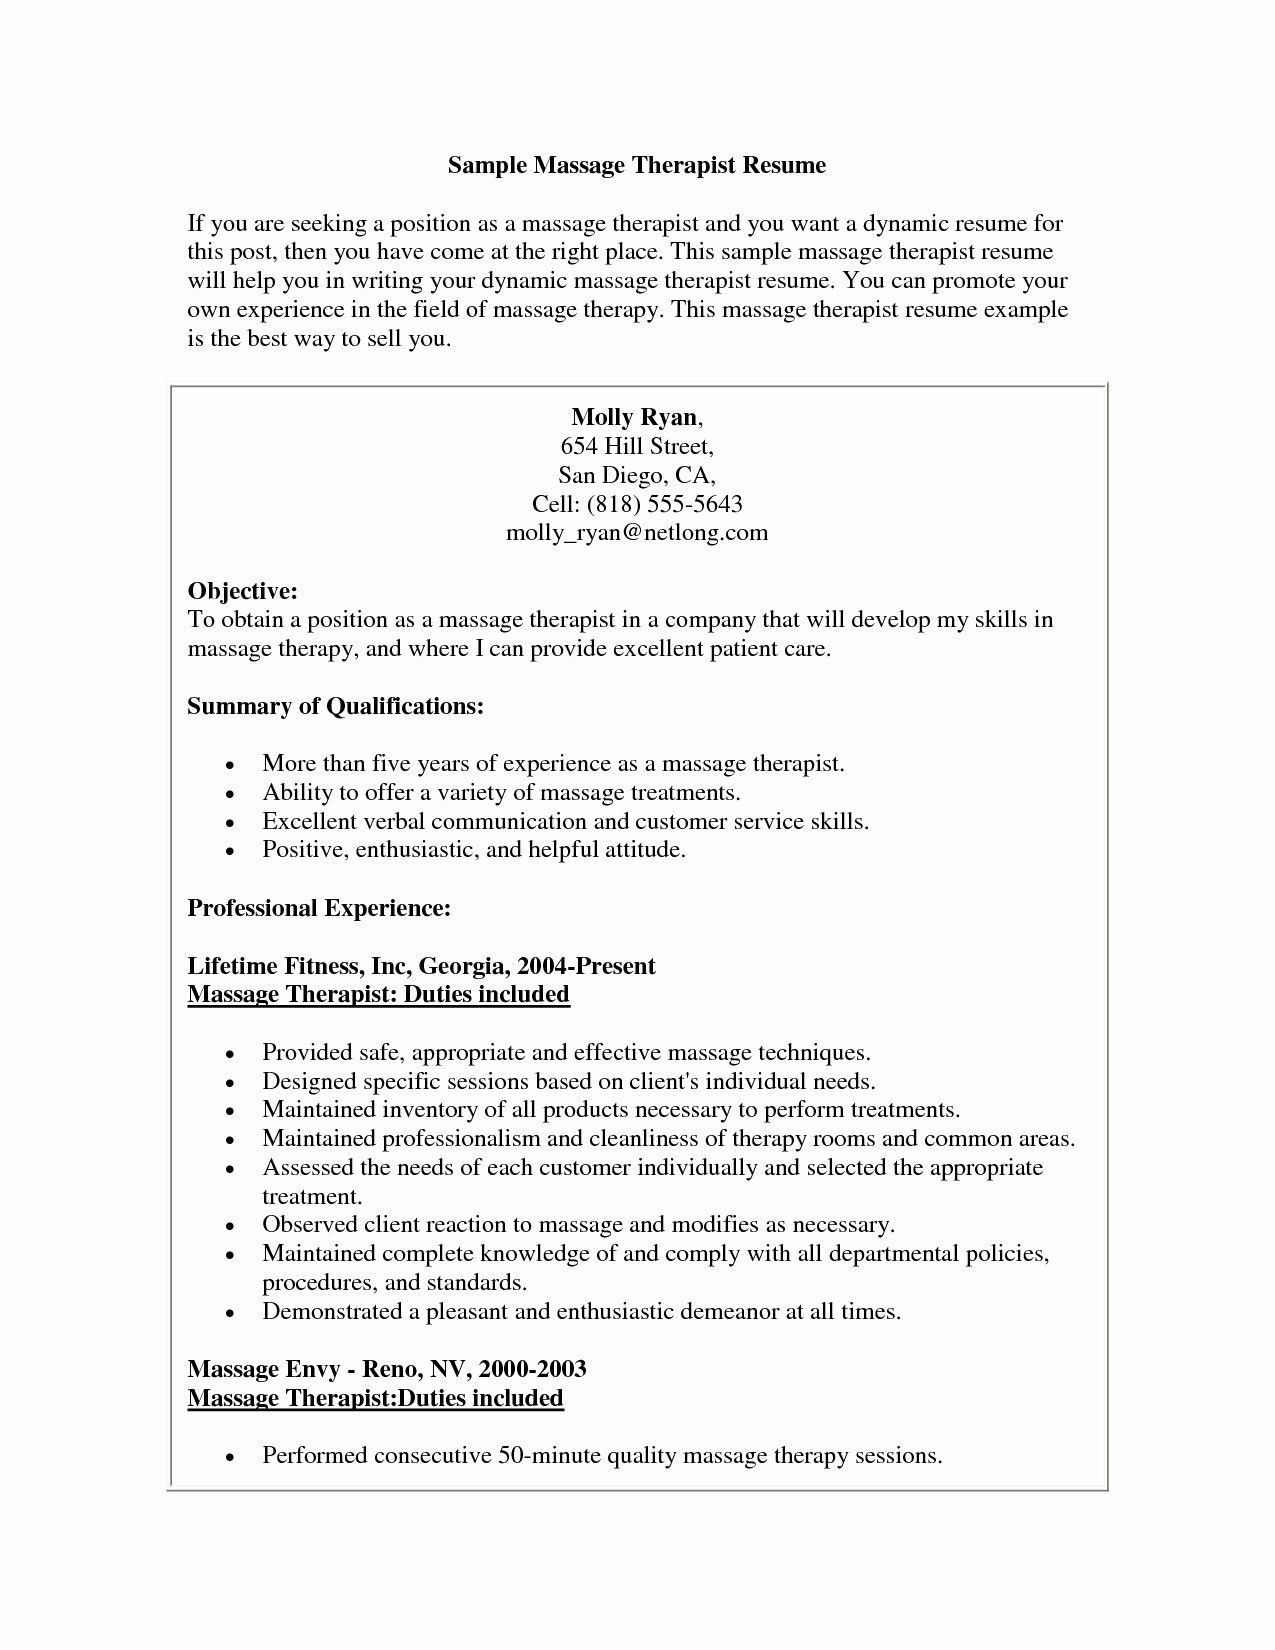 Pin by Steve Moccila on Resume templates | Best free resume ...